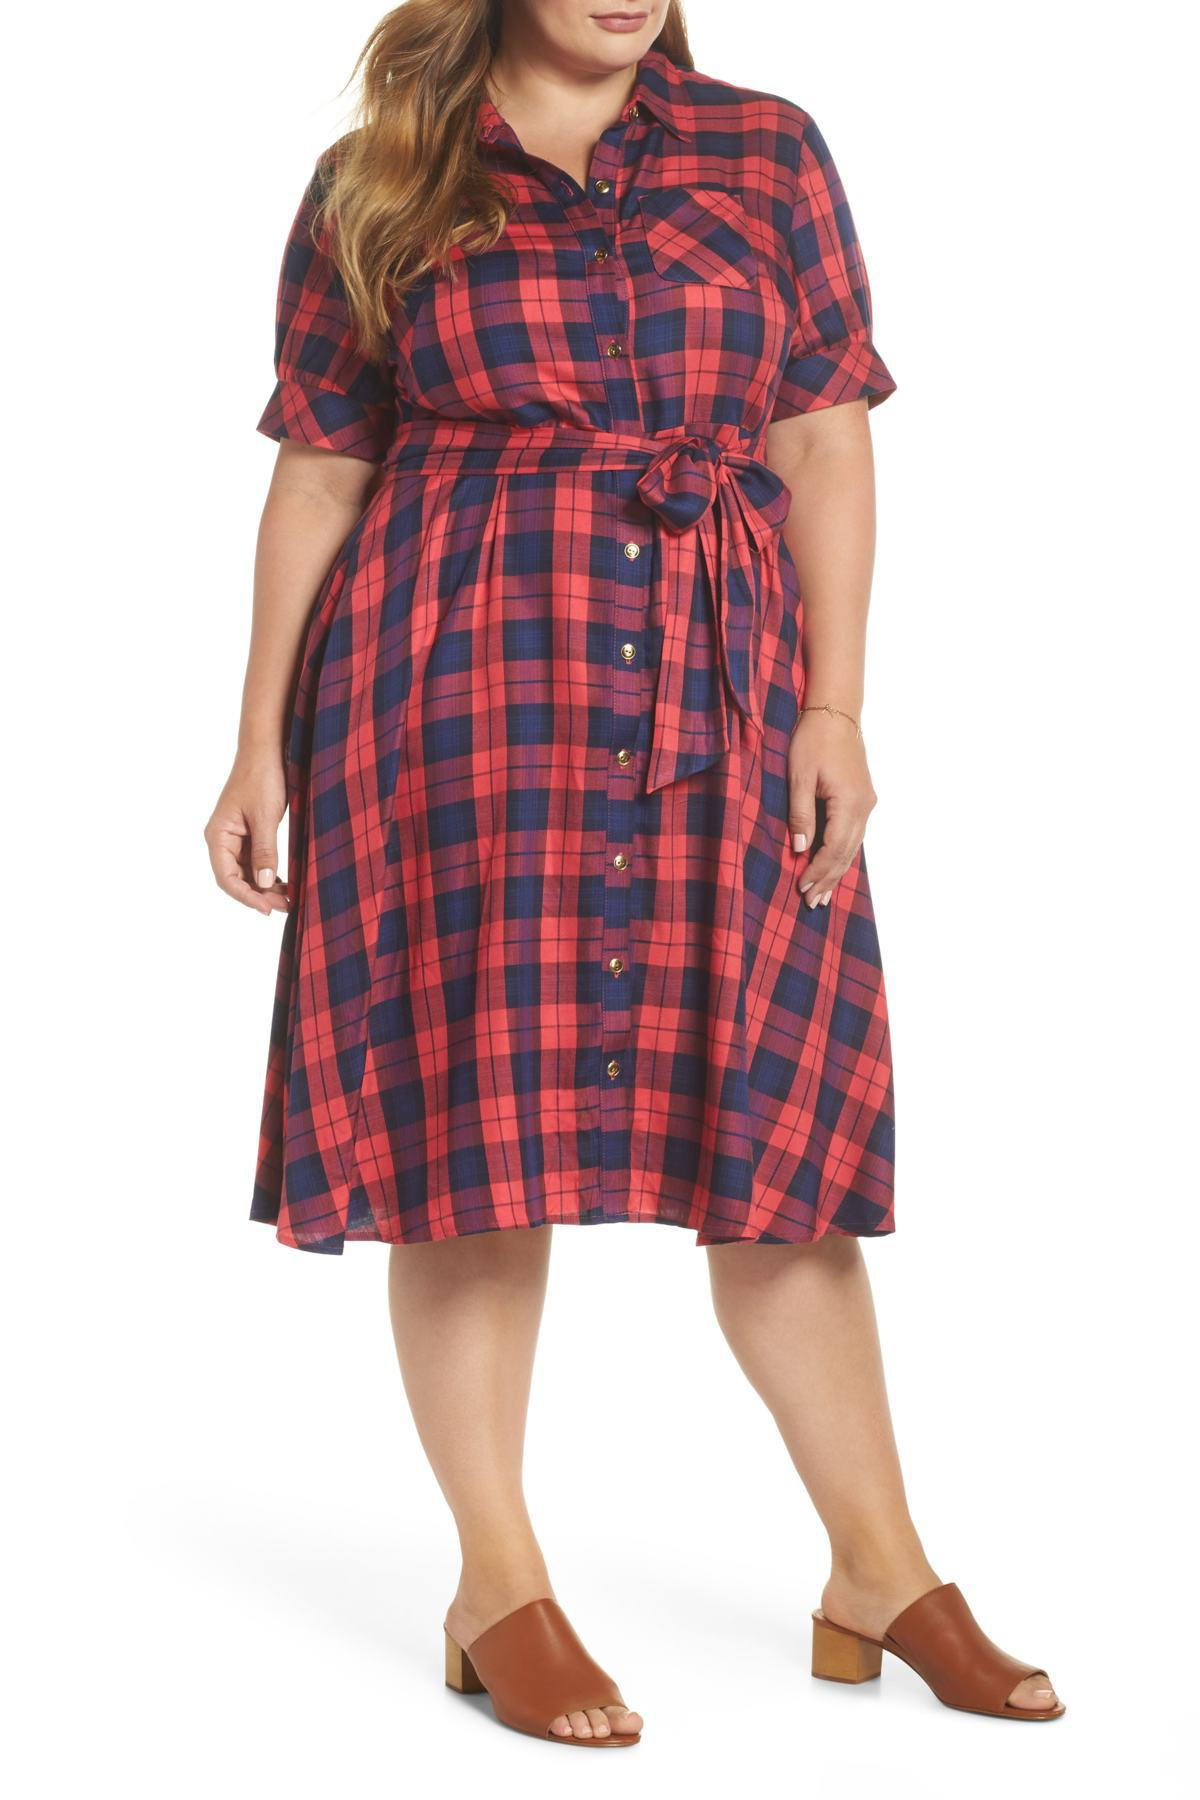 e23f786e4c63 Lyst - 1901 Plaid Shirtdress (plus Size) in Red